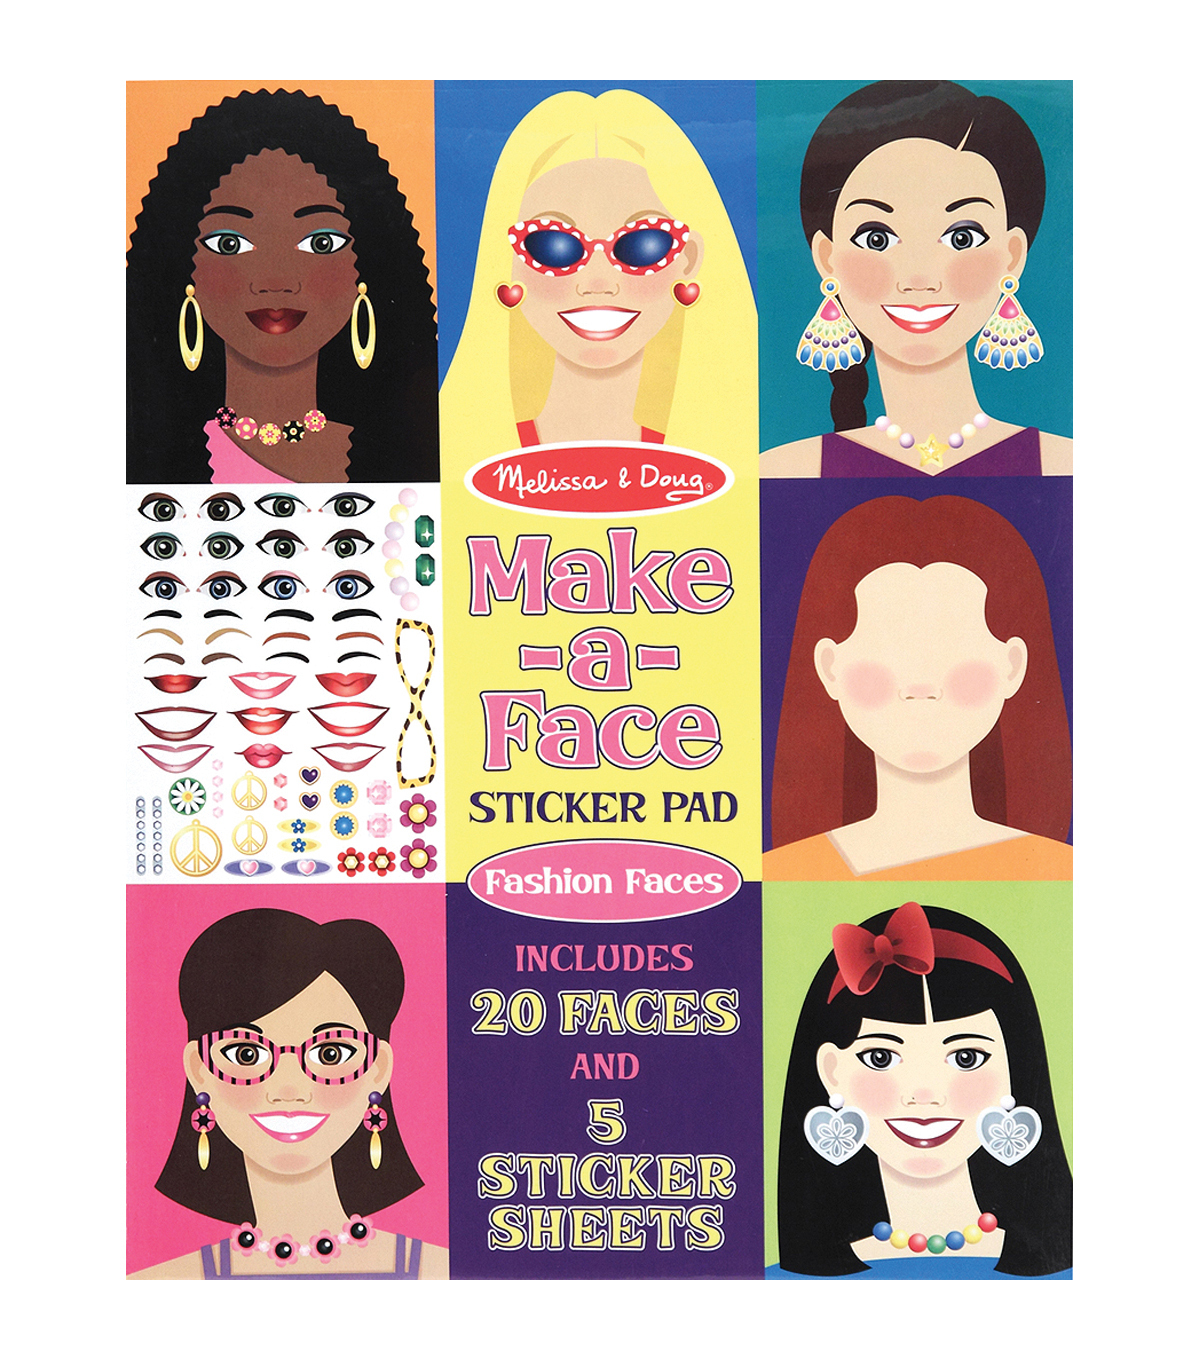 Melissa & Doug Make-a-Face Fashion Faces Sticker Pad